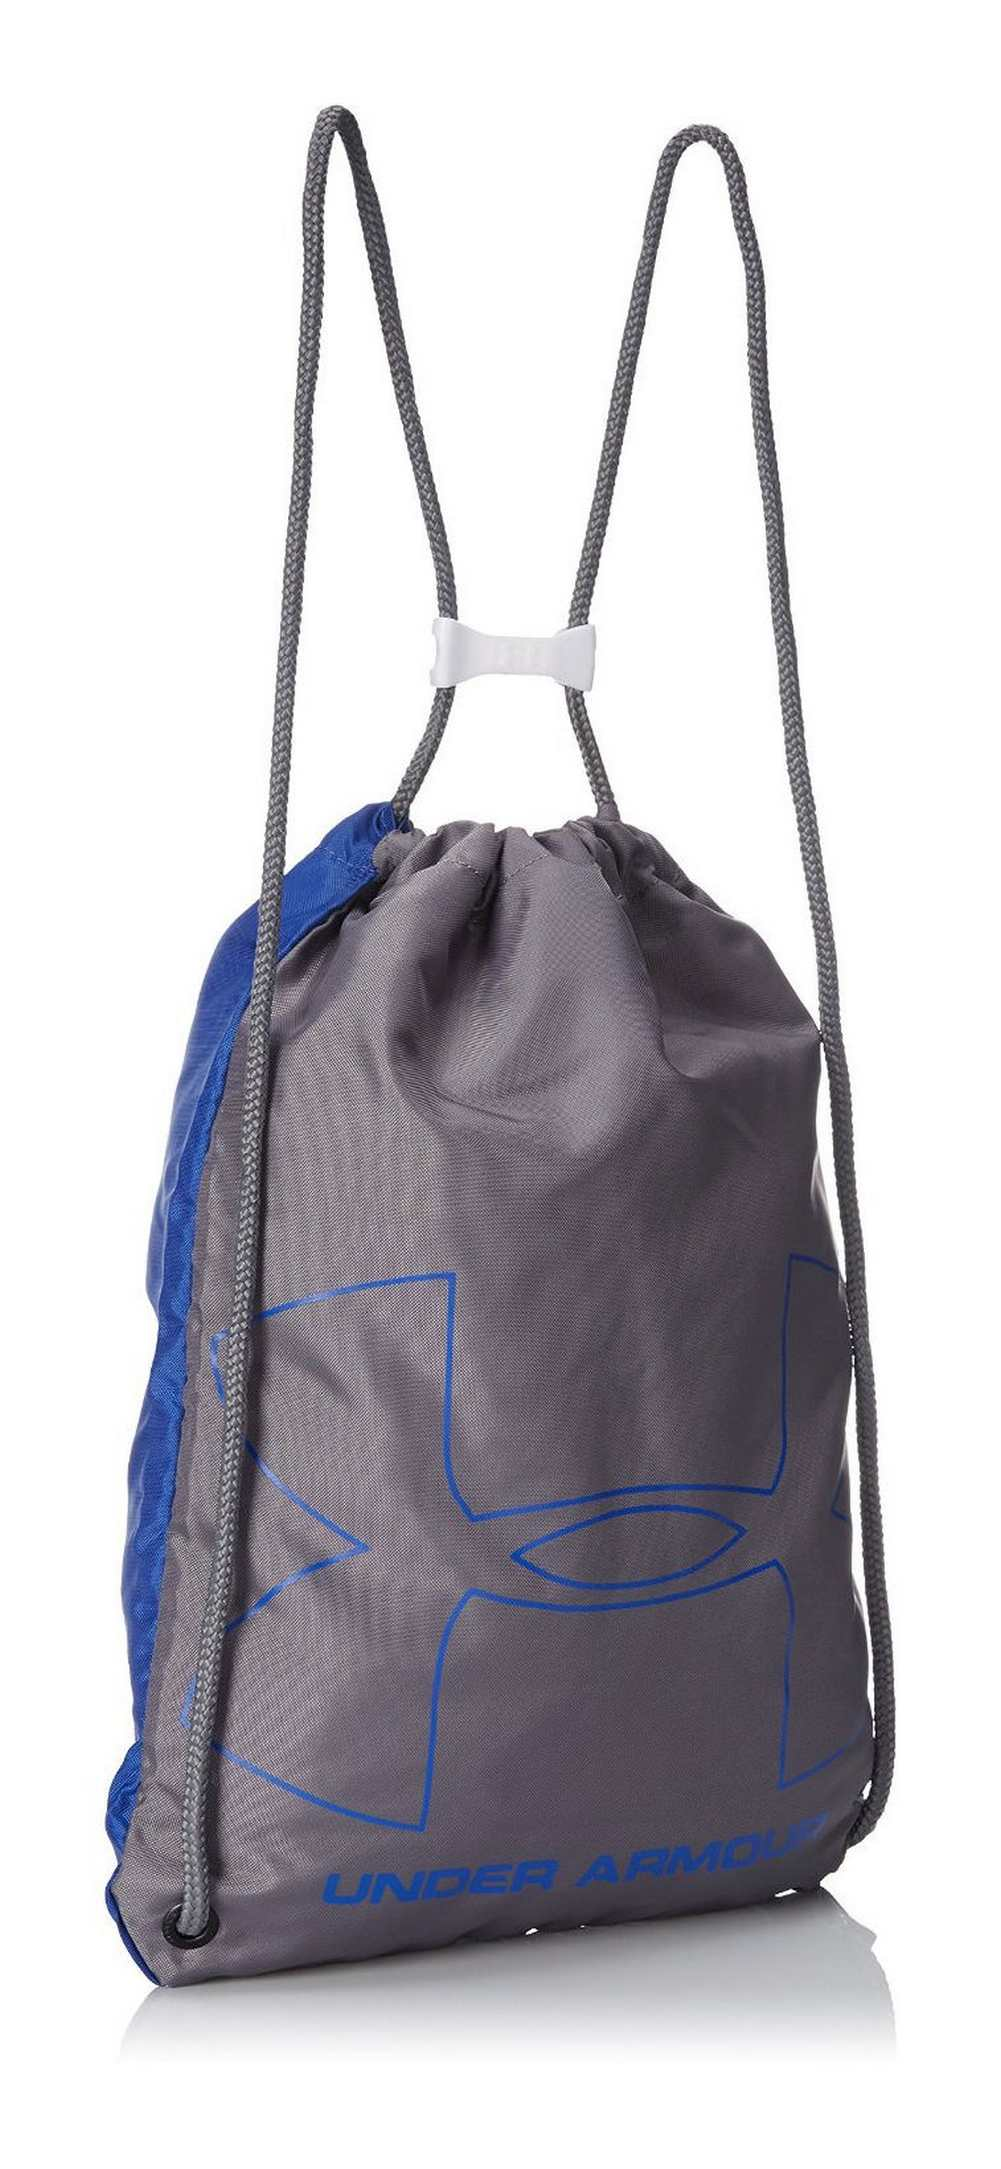 a105903e2653 drawstring backpack under armour cheap   OFF30% The Largest Catalog ...